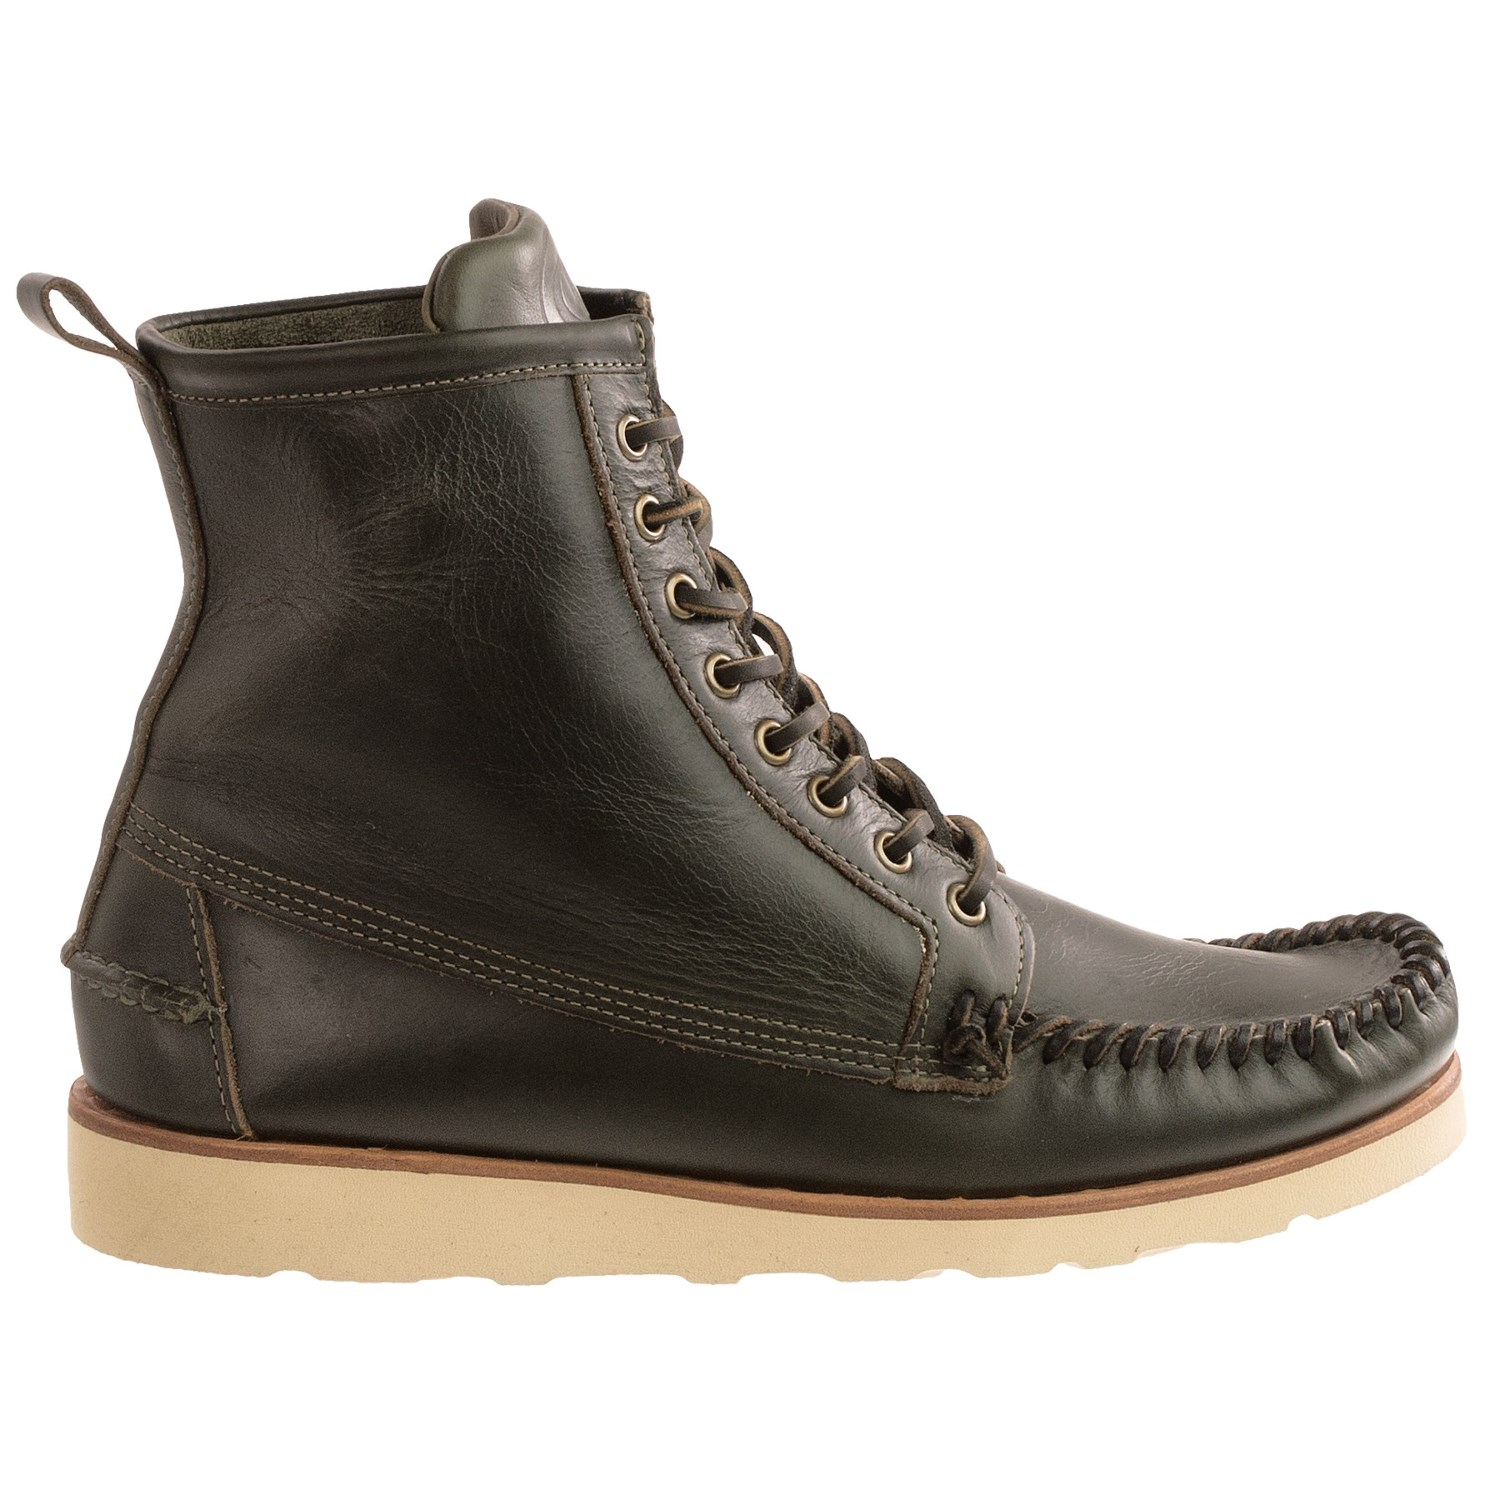 Lace Up Boots For Men pyS4w1DS